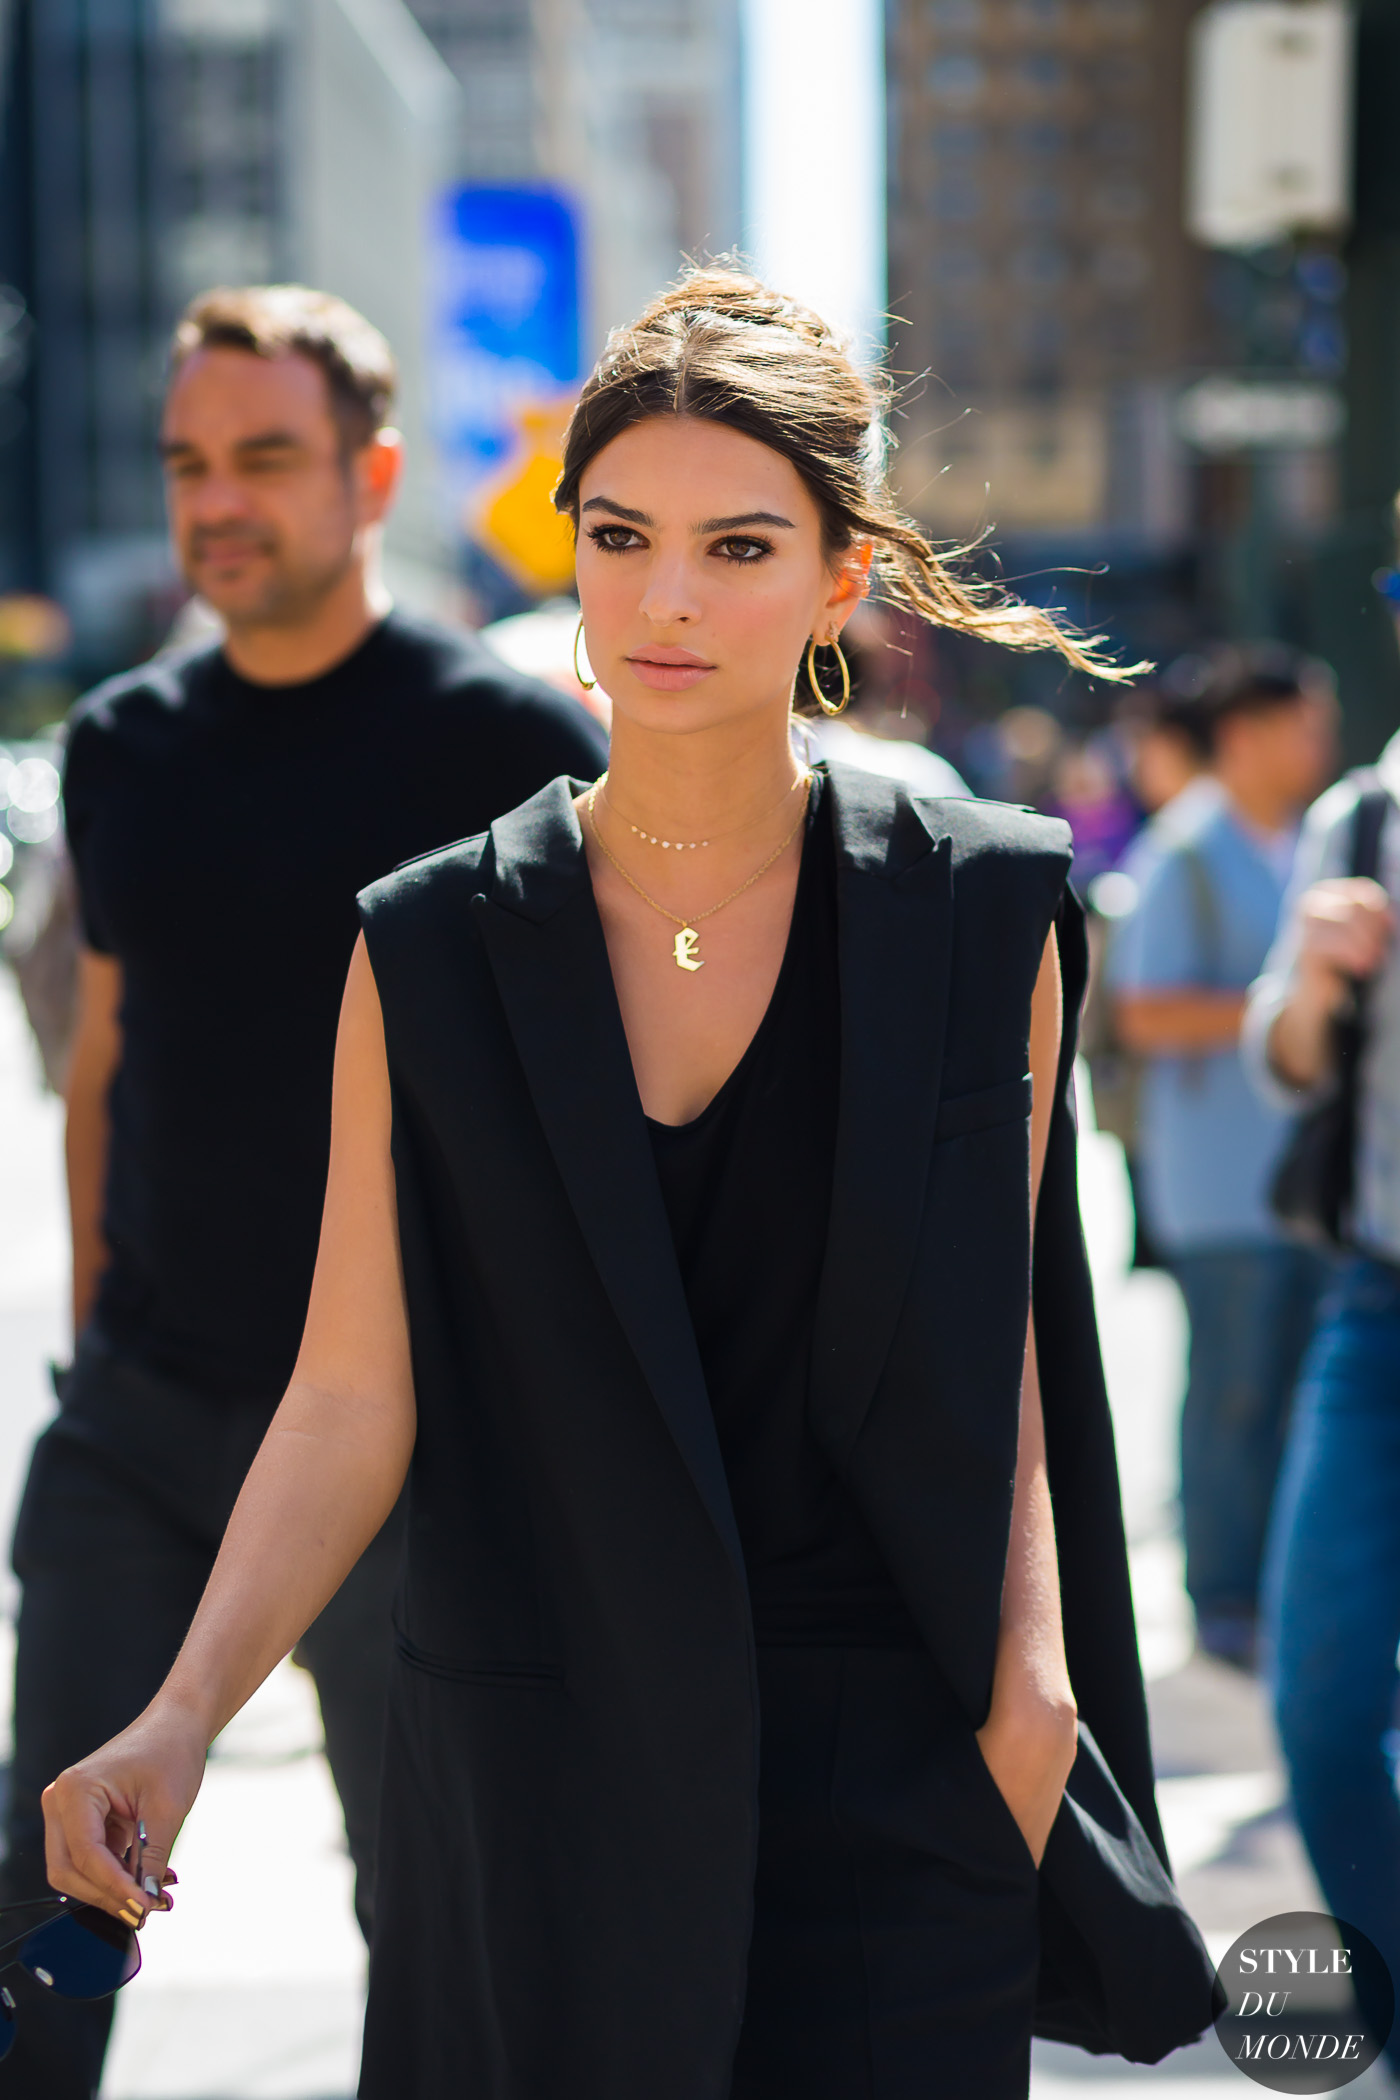 emily-ratajkowski-by-styledumonde-street-style-fashion-photography